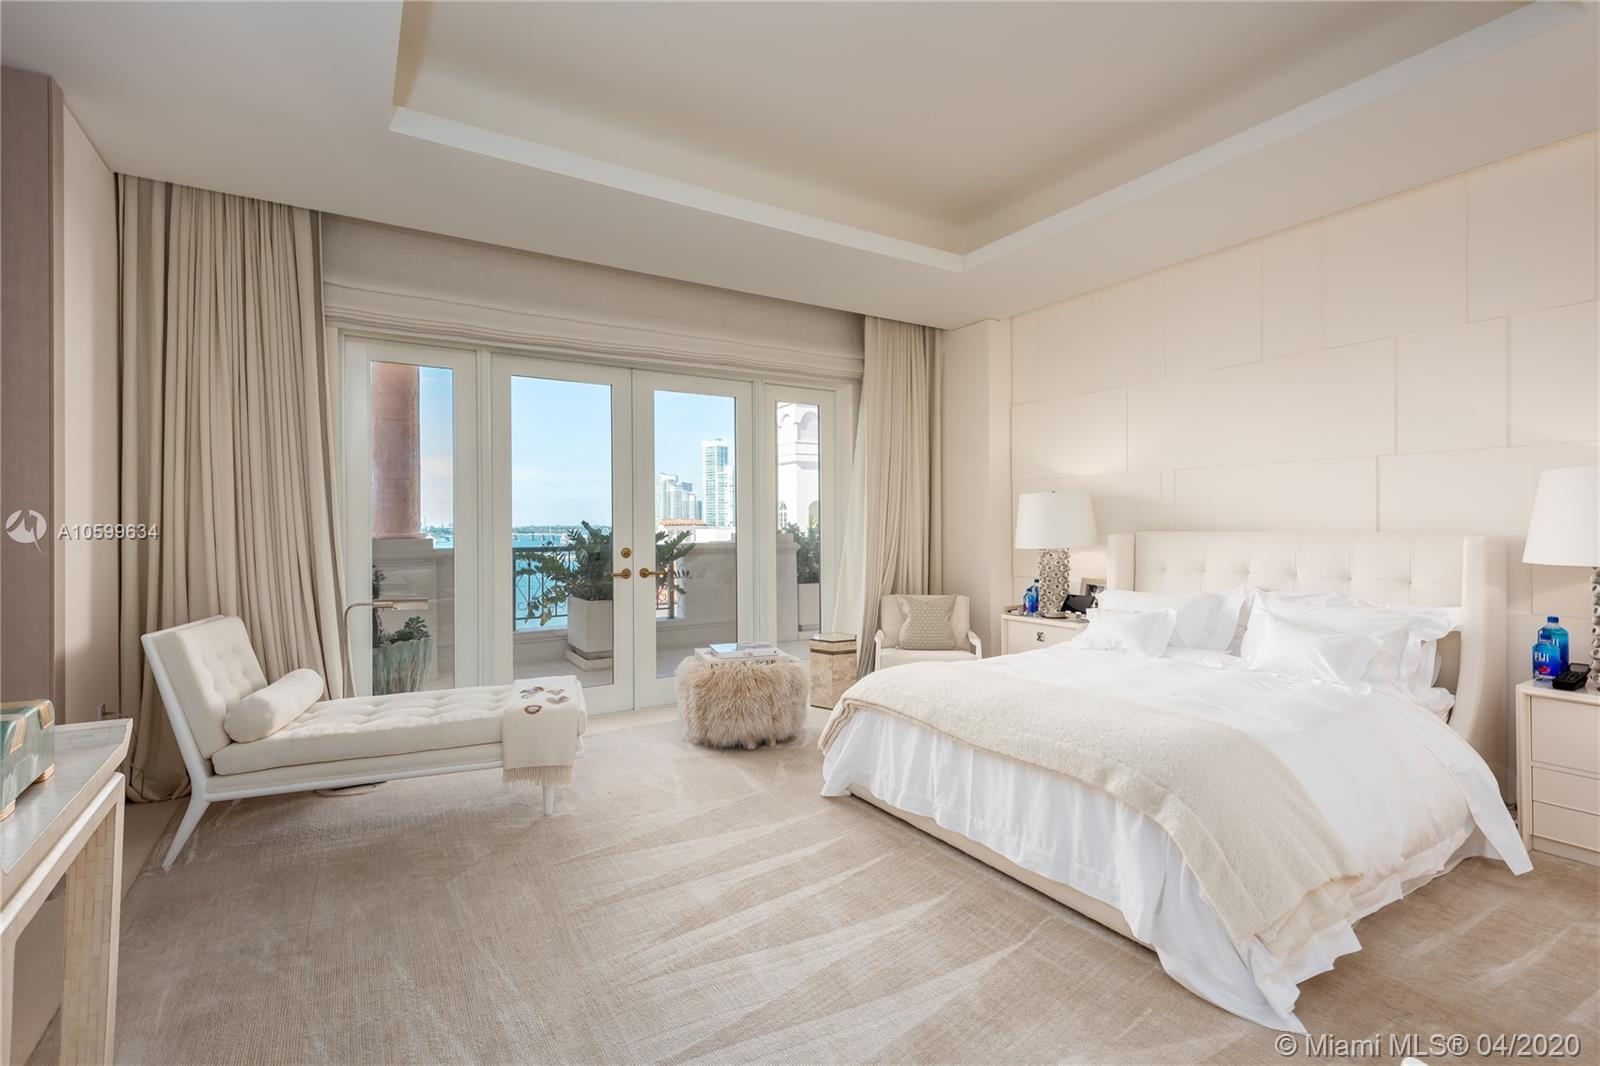 7292 Fisher island dr-PH7292 miami-beach-fl-33109-a10599634-Pic59